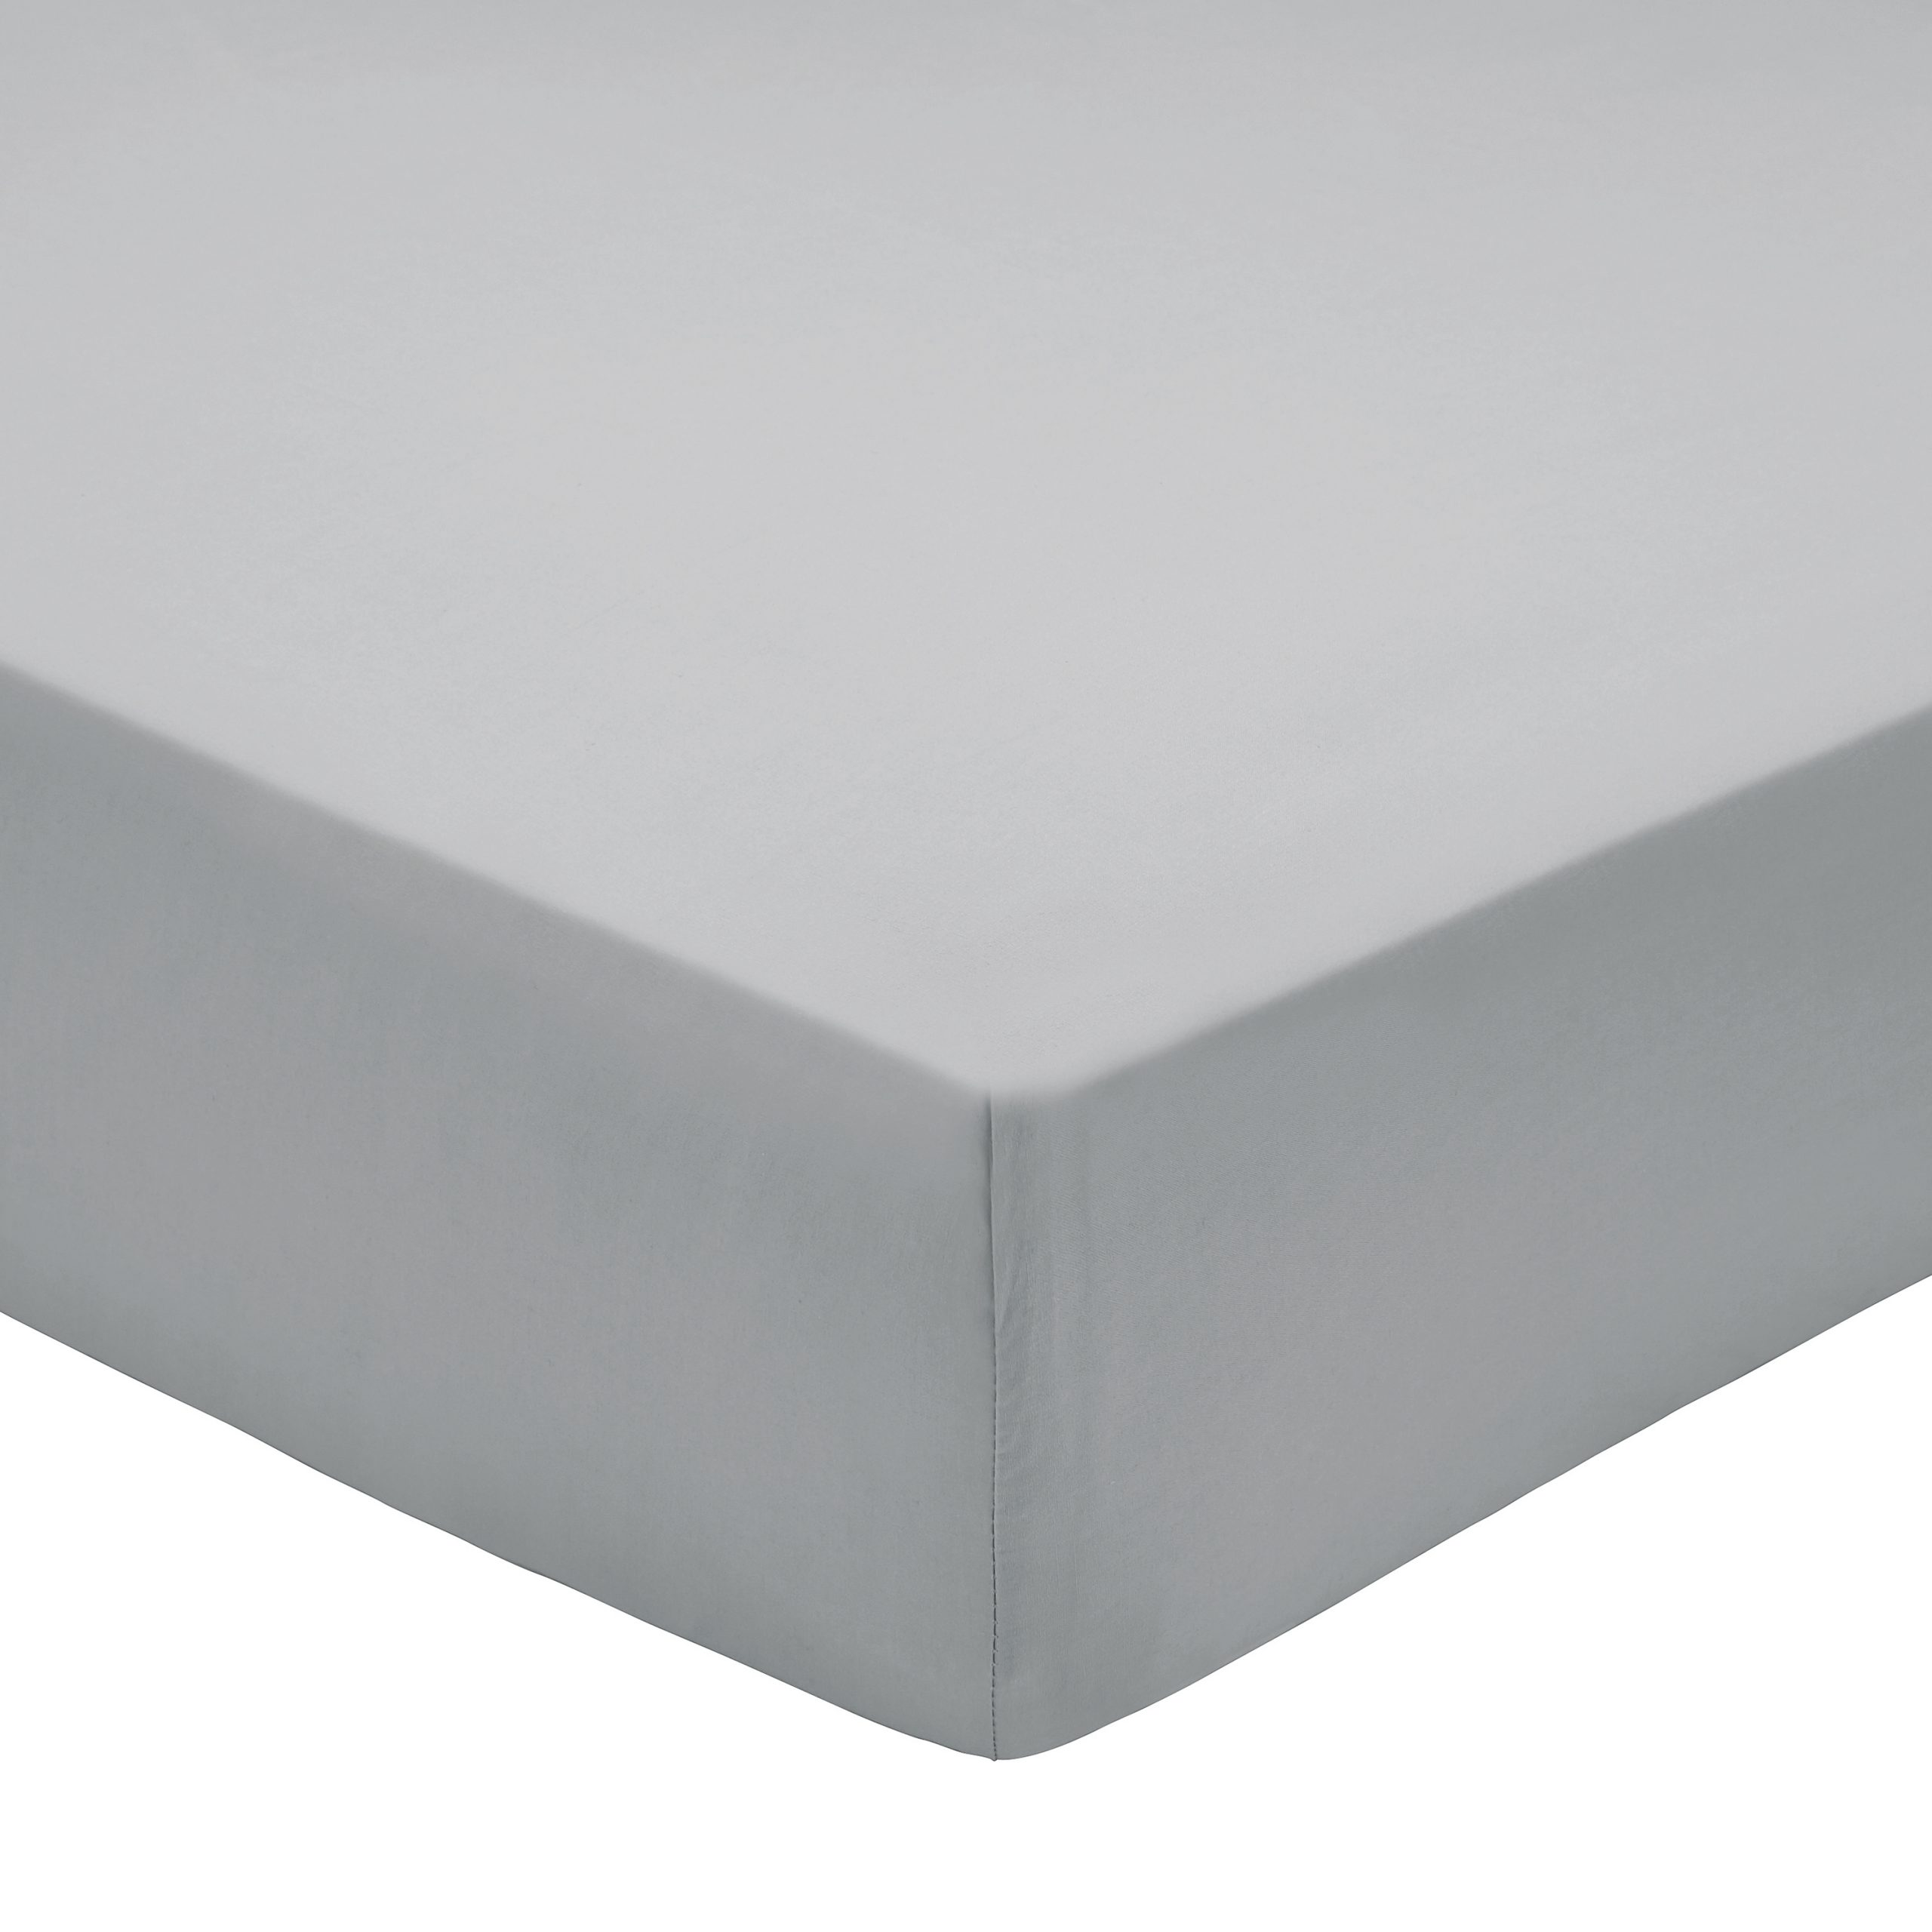 200TC PIMA COTTON FITTED SHEET DOUBLE GREY